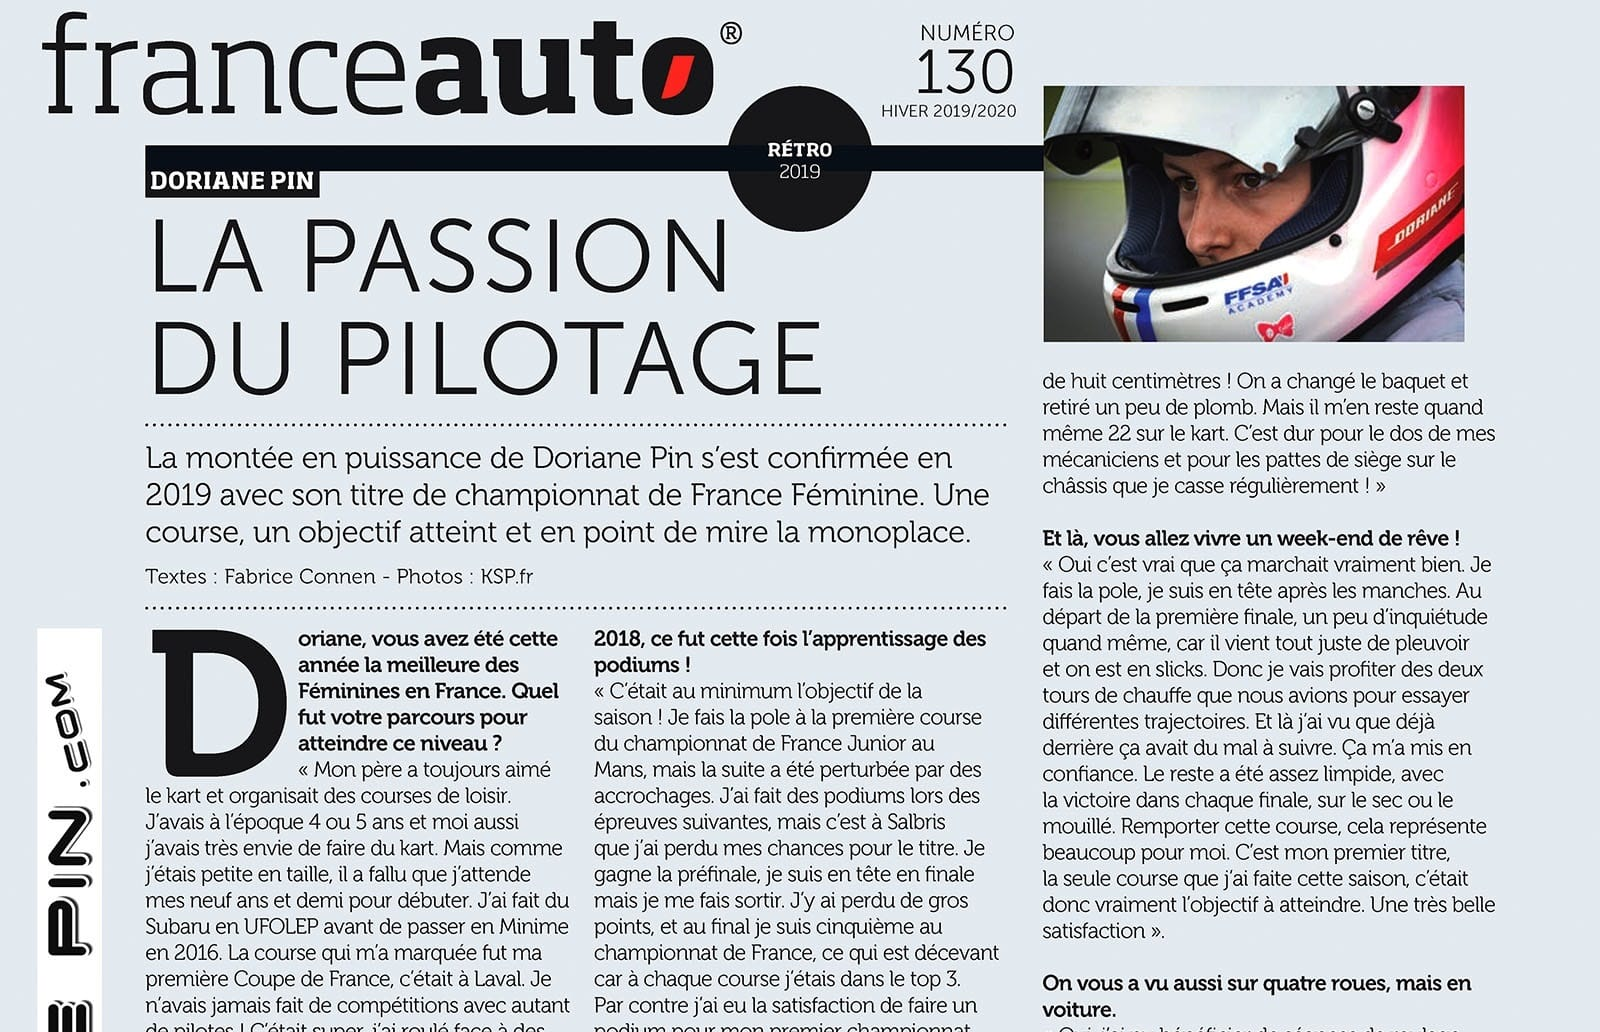 Doriane Pin Passion du pilotage FranceAuto130 article janv 2020Doriane Pin , La passion du pilotage (France Auto #130 article janvier 2020) mini